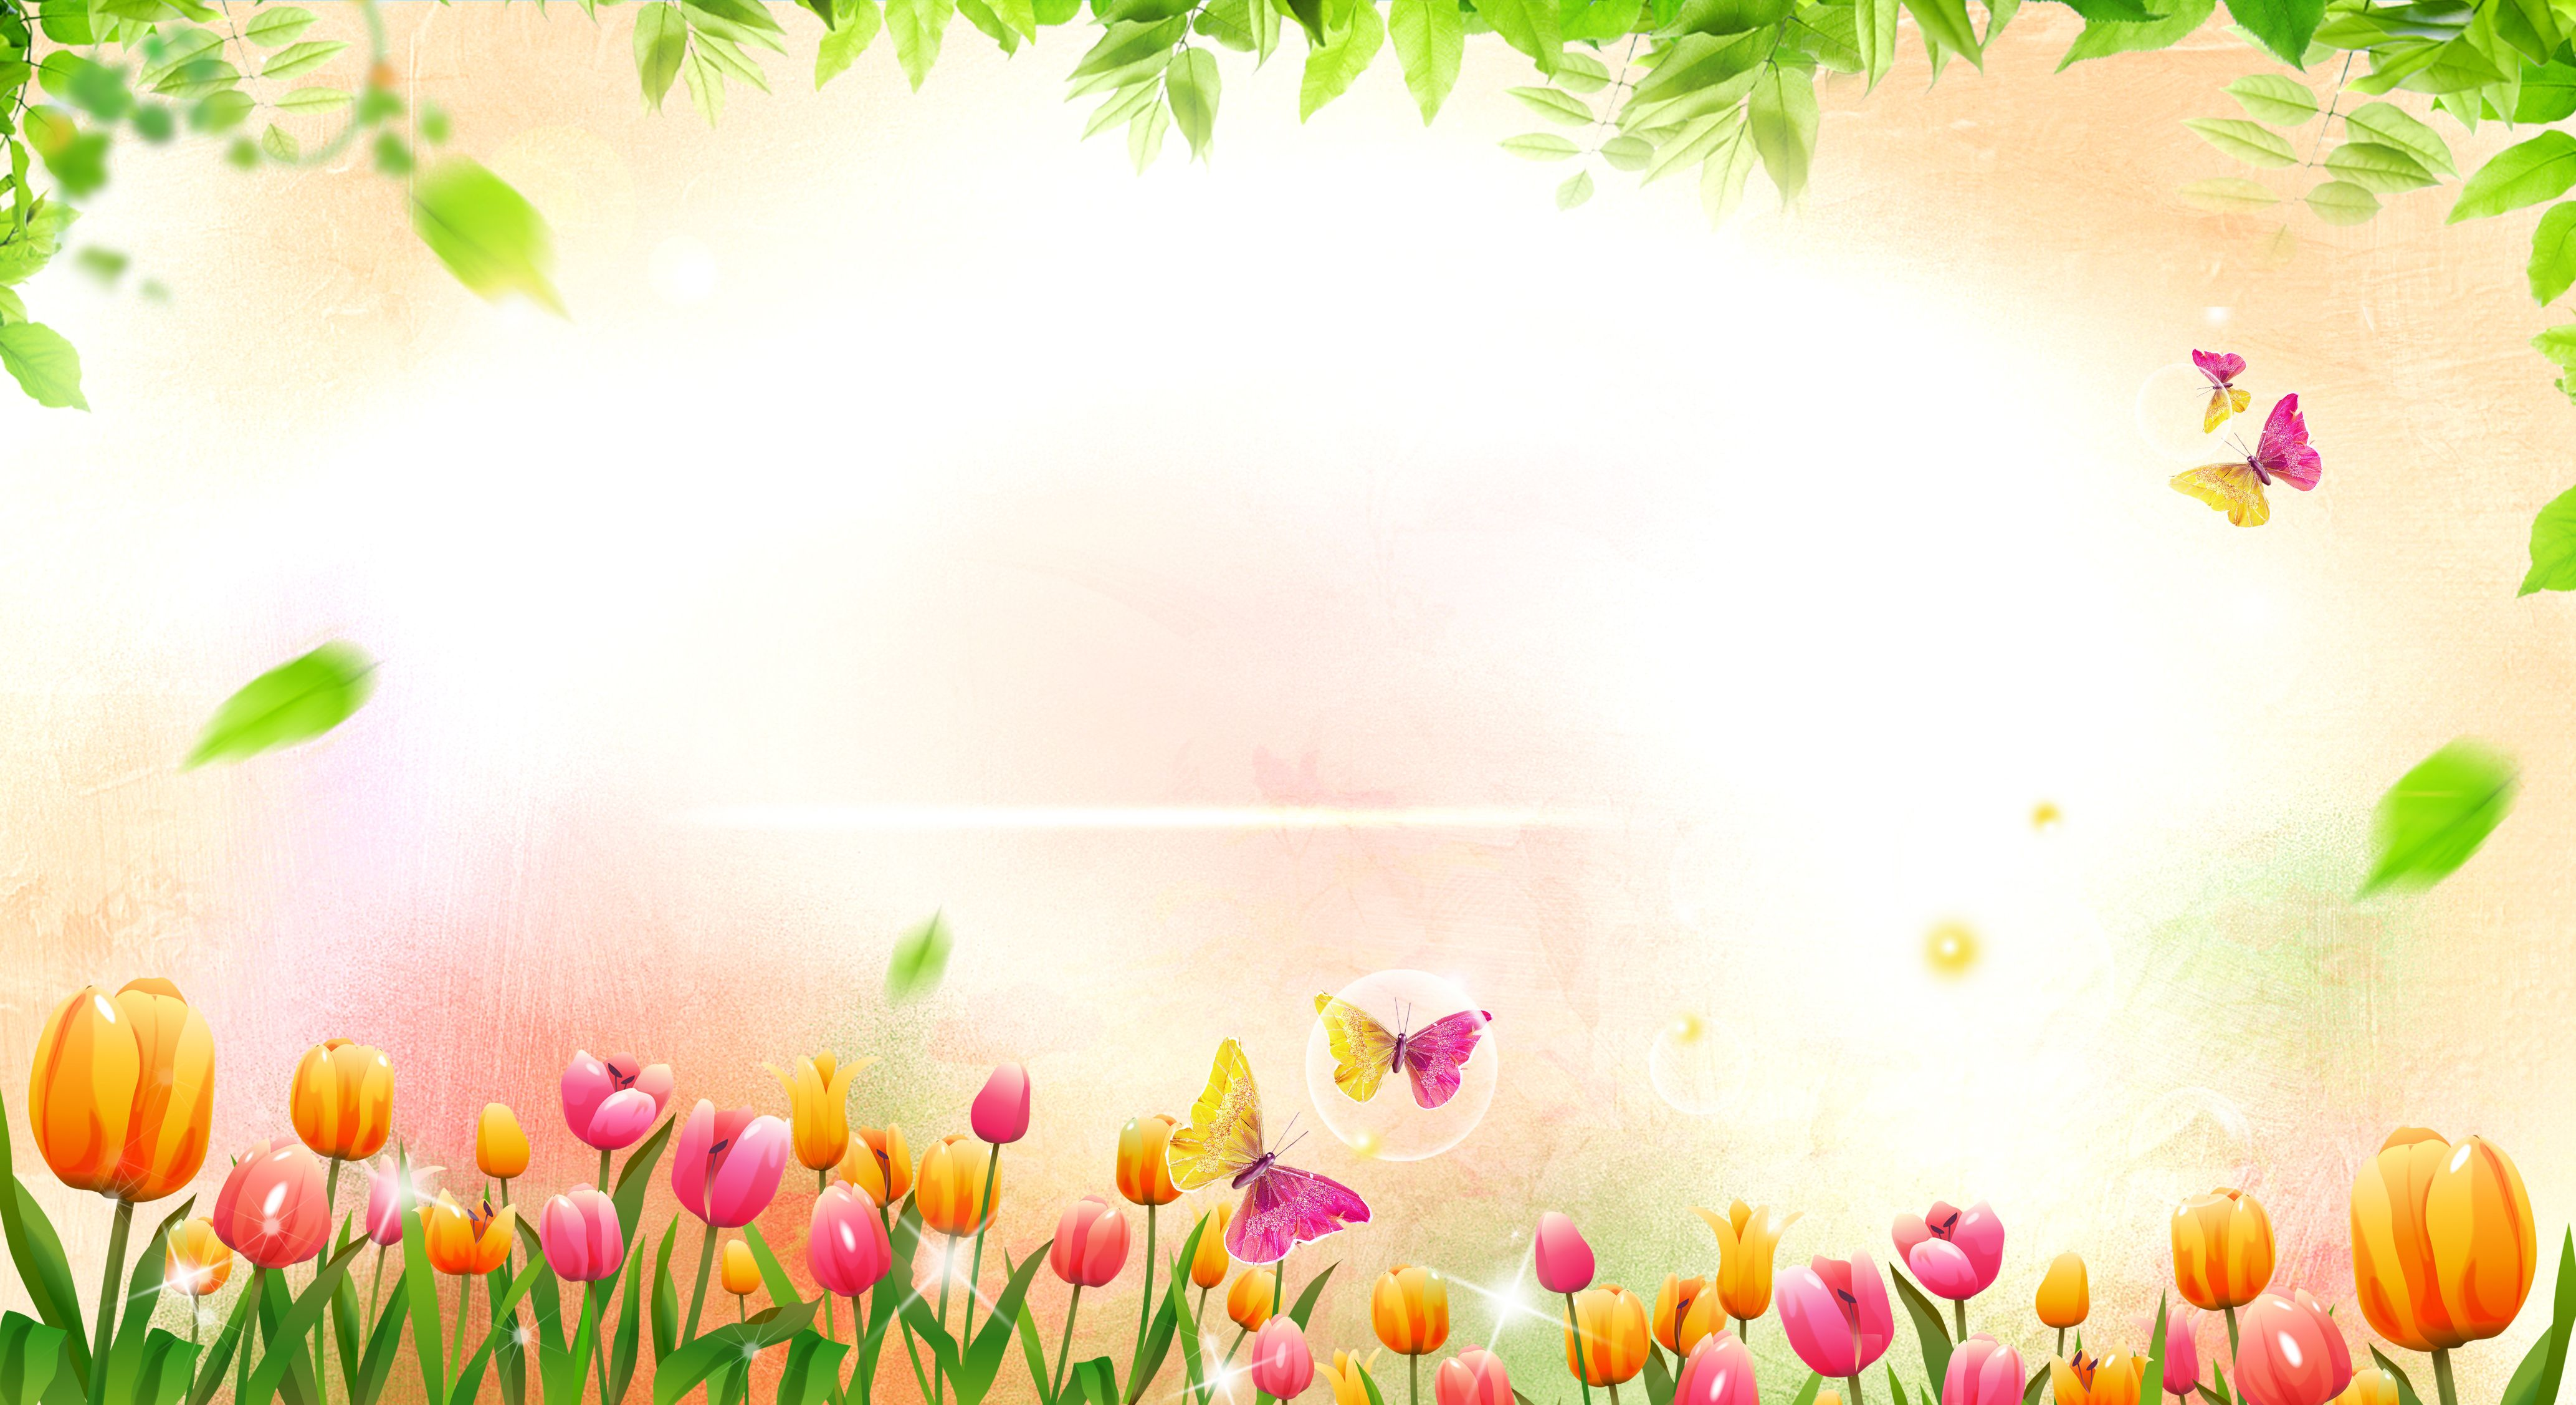 Romantic Pink Flowers Background Material Flying Butterfly Meat Flower Backgrounds Pink Flowers Background Pink Flowers